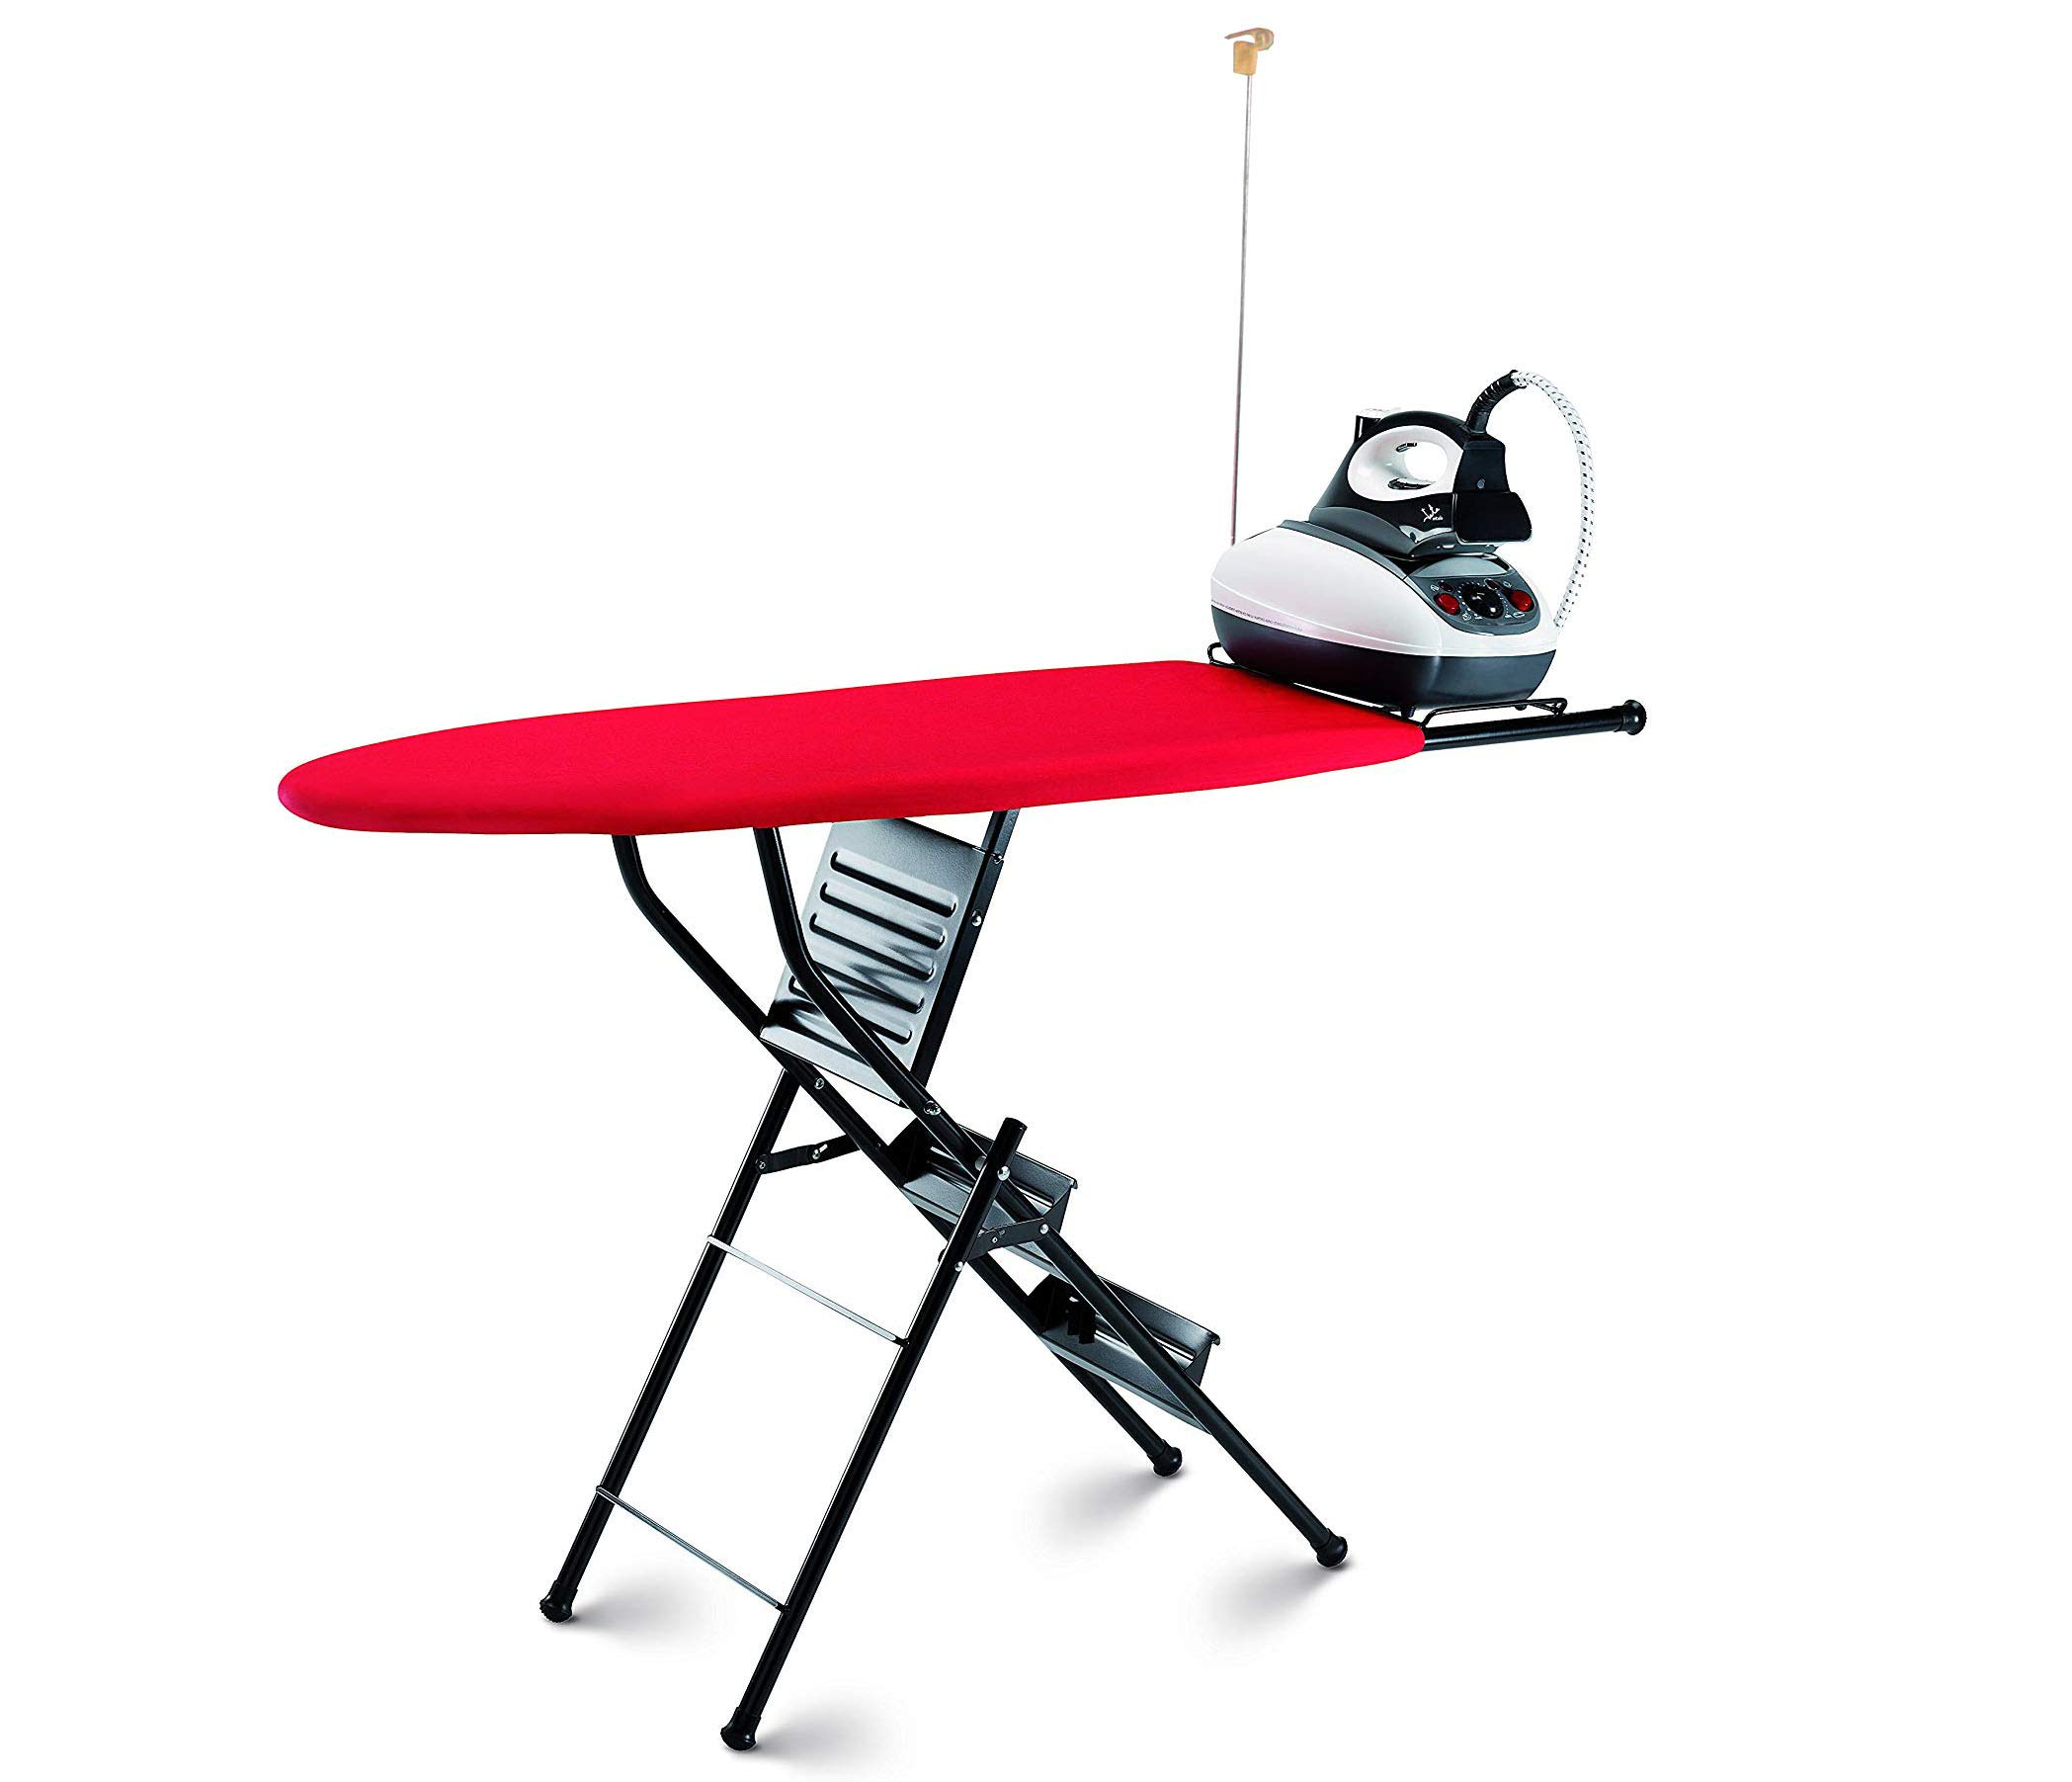 Xabitat Ironing Board Ladder - 2 in 1 - Space Saving Iron Table with 3 Step Ladder Combo - Black and red